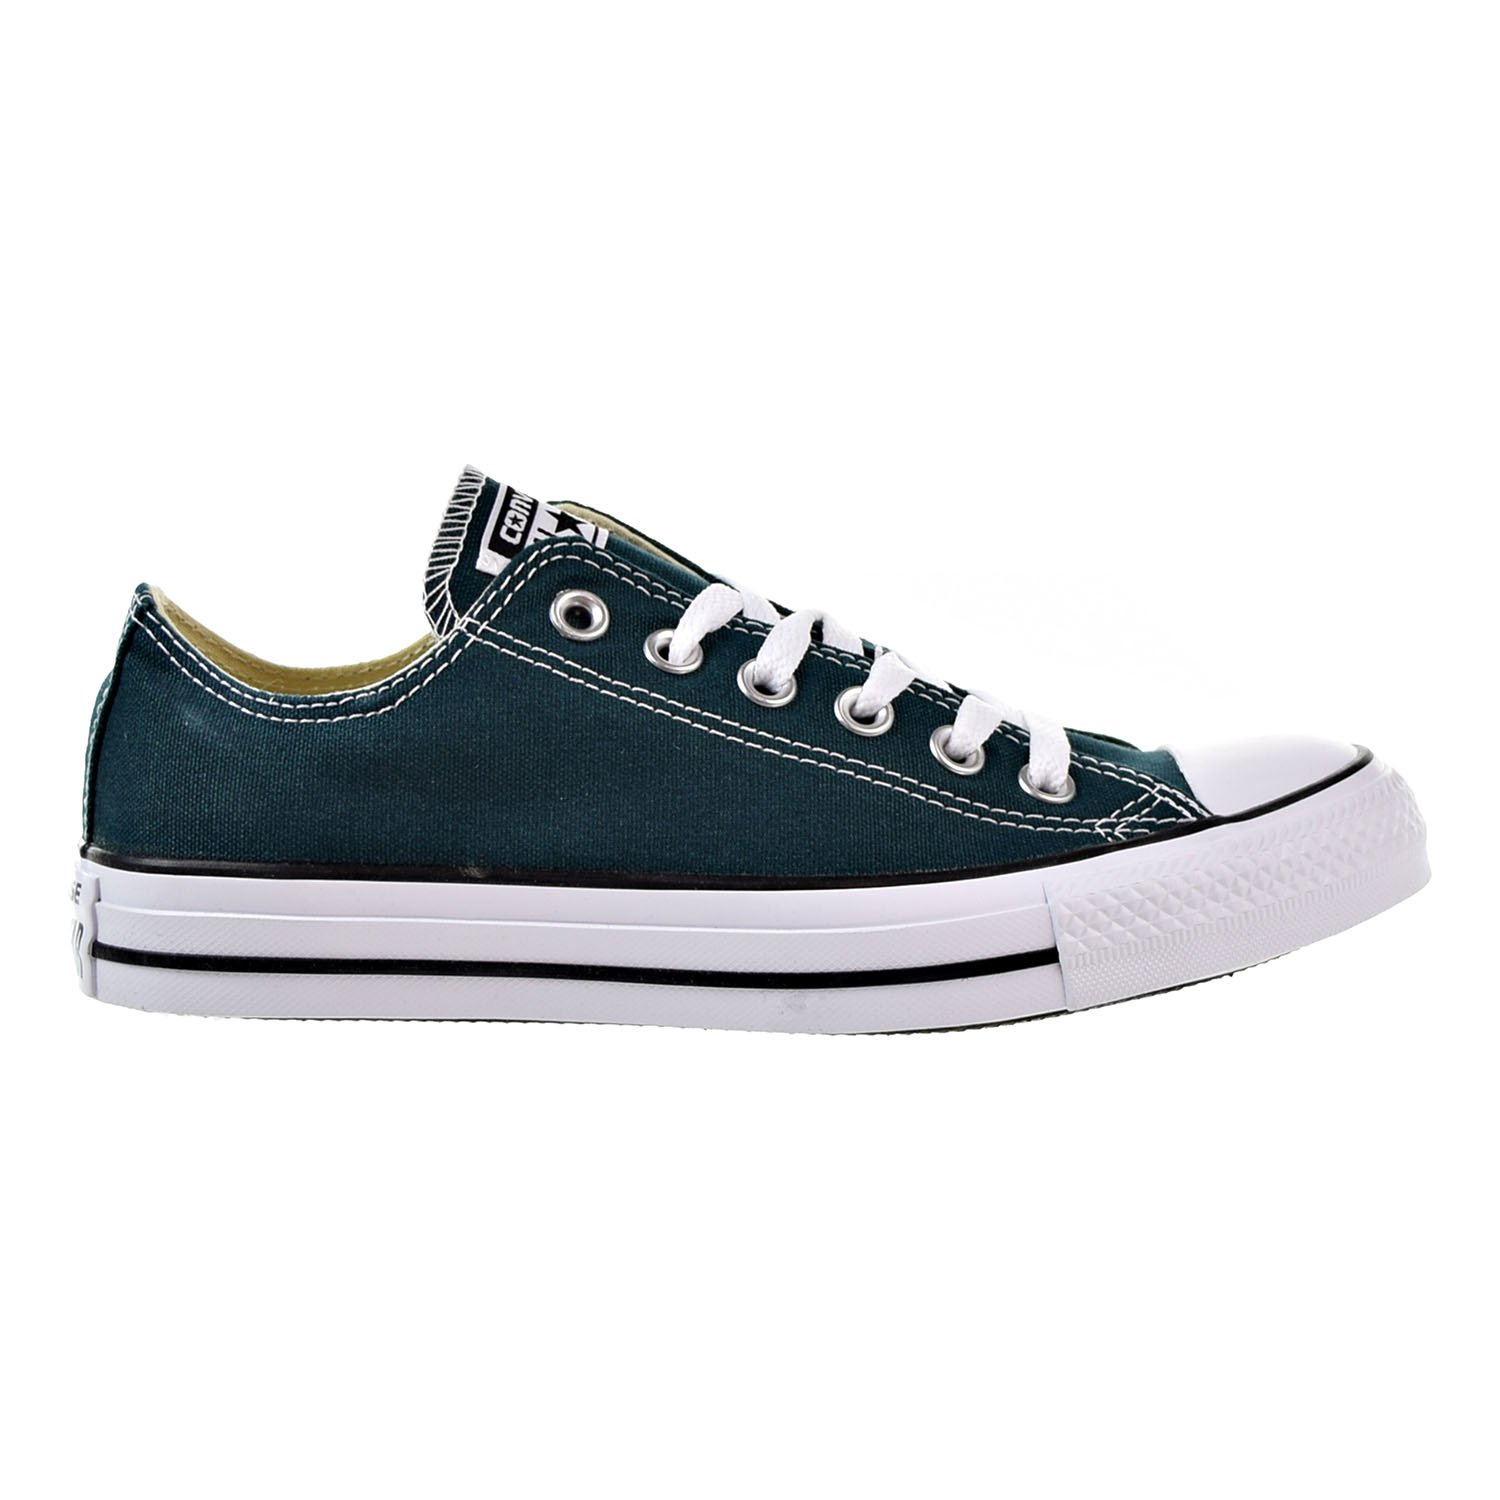 Converse Chuck Taylor All Star OX Men's Shoes Dark Atomic Teal 157647f (9.5 D(M) US)